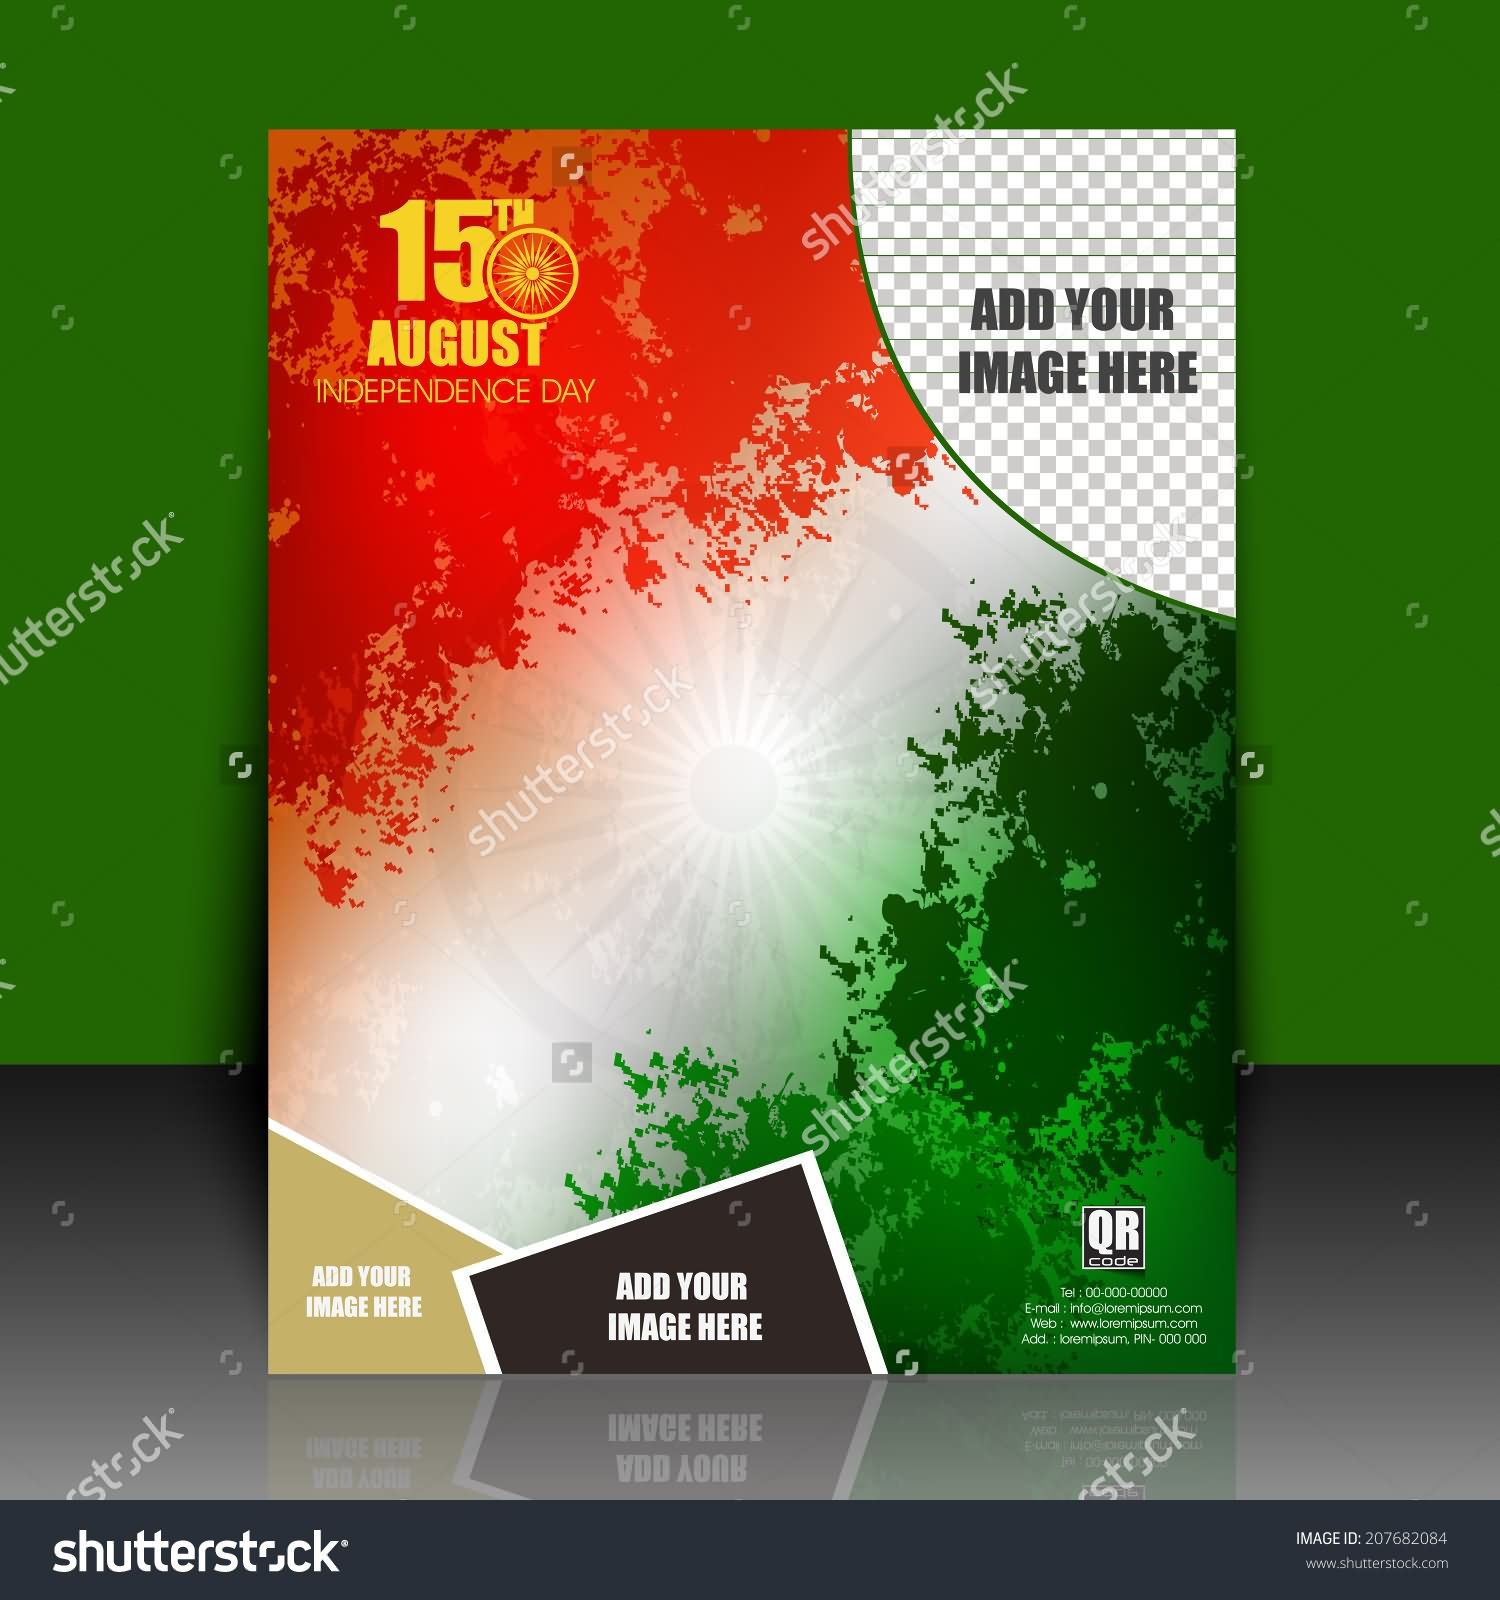 Card Making Ideas Independence Day Part - 47: 15th August Independence Day Greeting Card